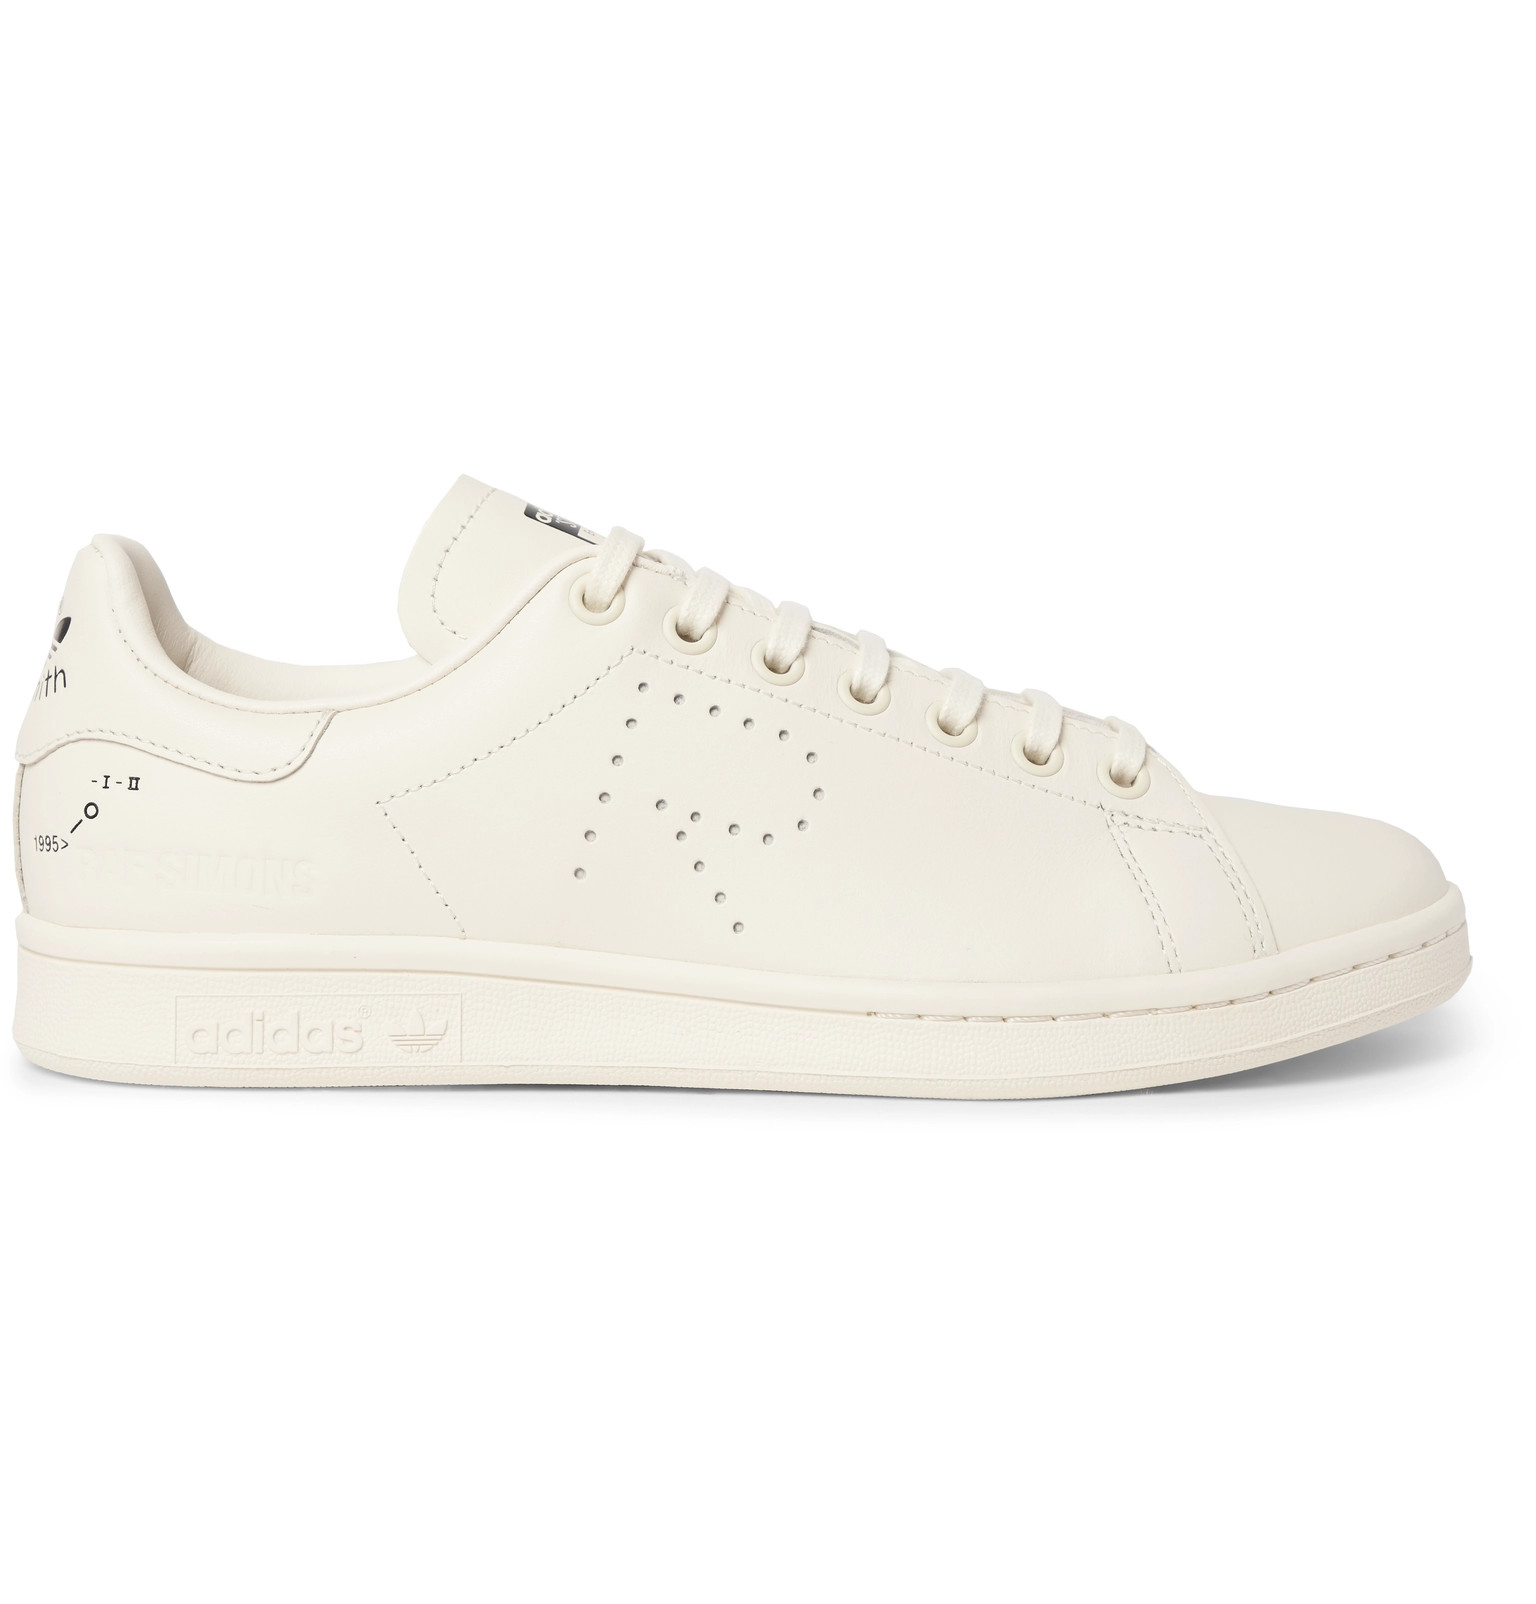 san francisco c2268 9f29c Raf Simons - + adidas Originals Stan Smith Leather Sneakers